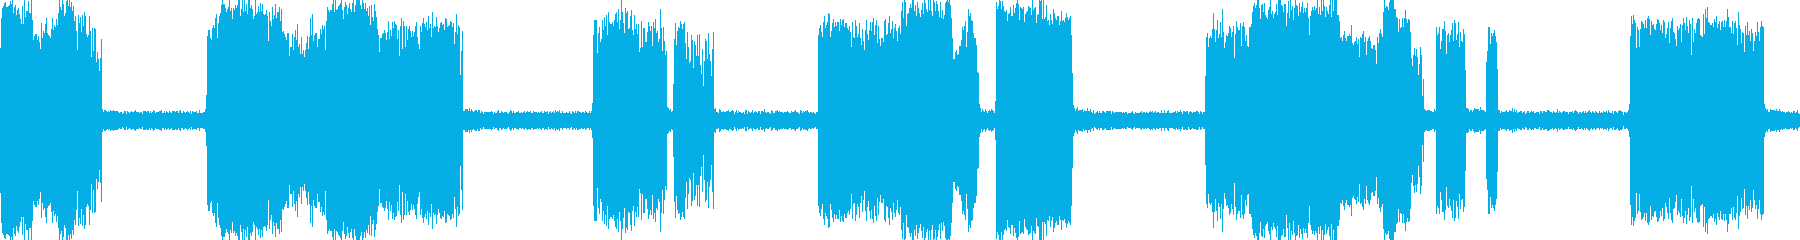 Electric bee's reproduced waveform